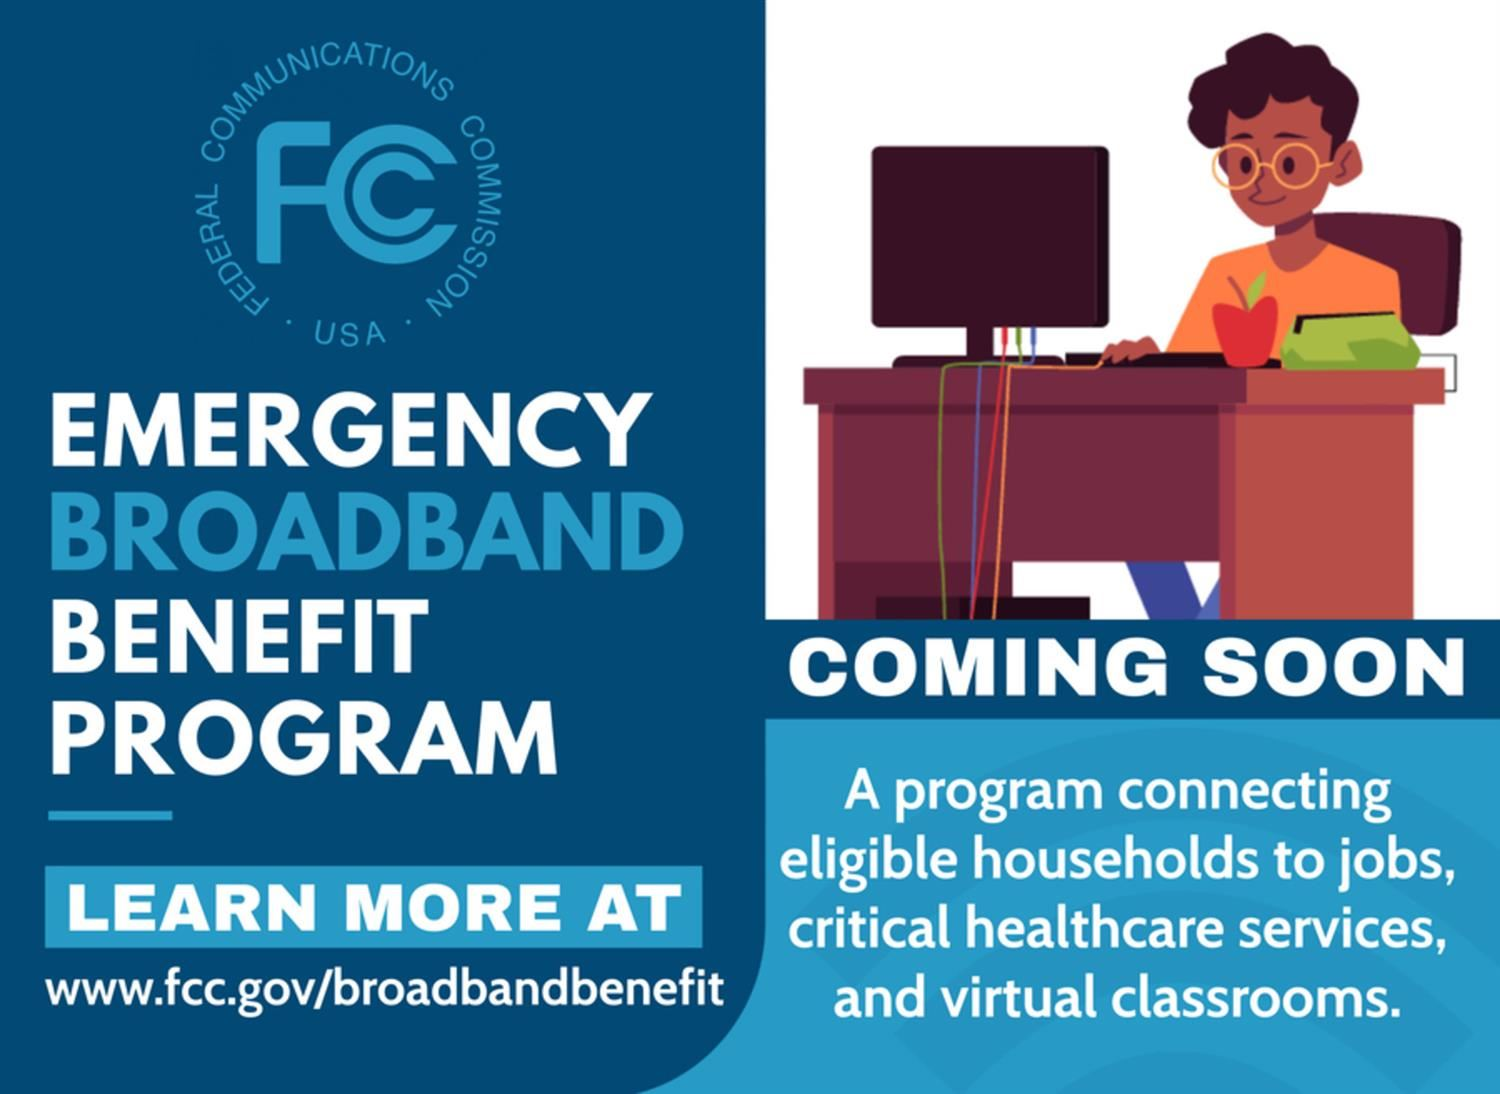 PLA@48 FCC's Emergency Broadband Benefit Program